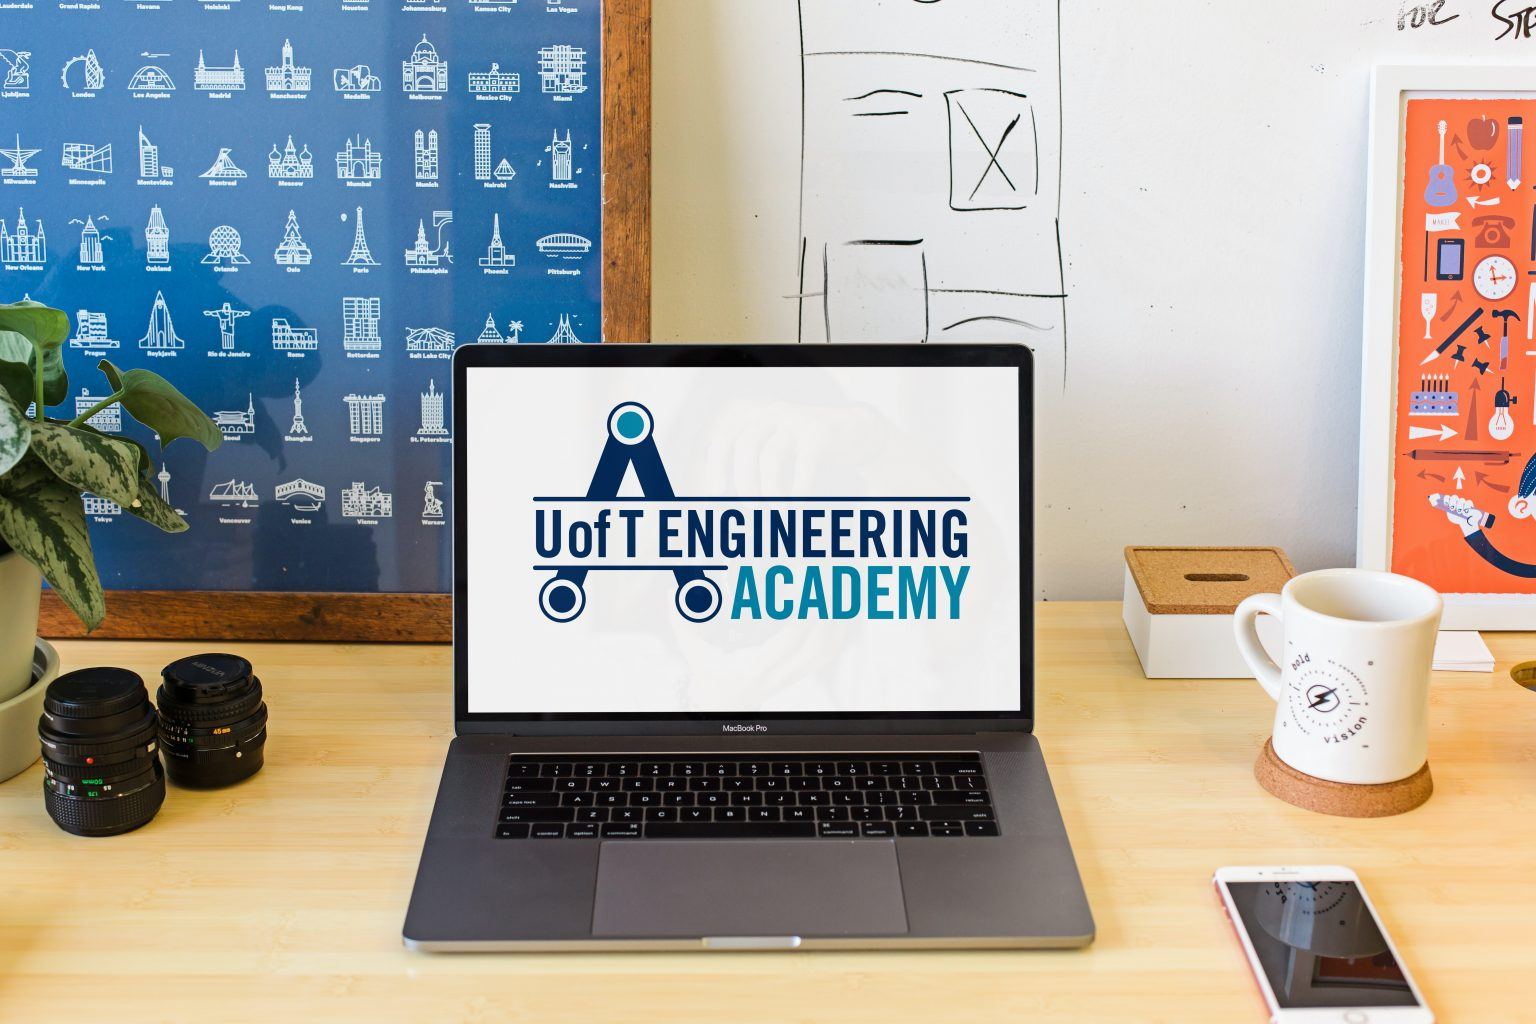 A laptop sitting on a desk with the U of T Engineering Academy landing page displayed on the screen